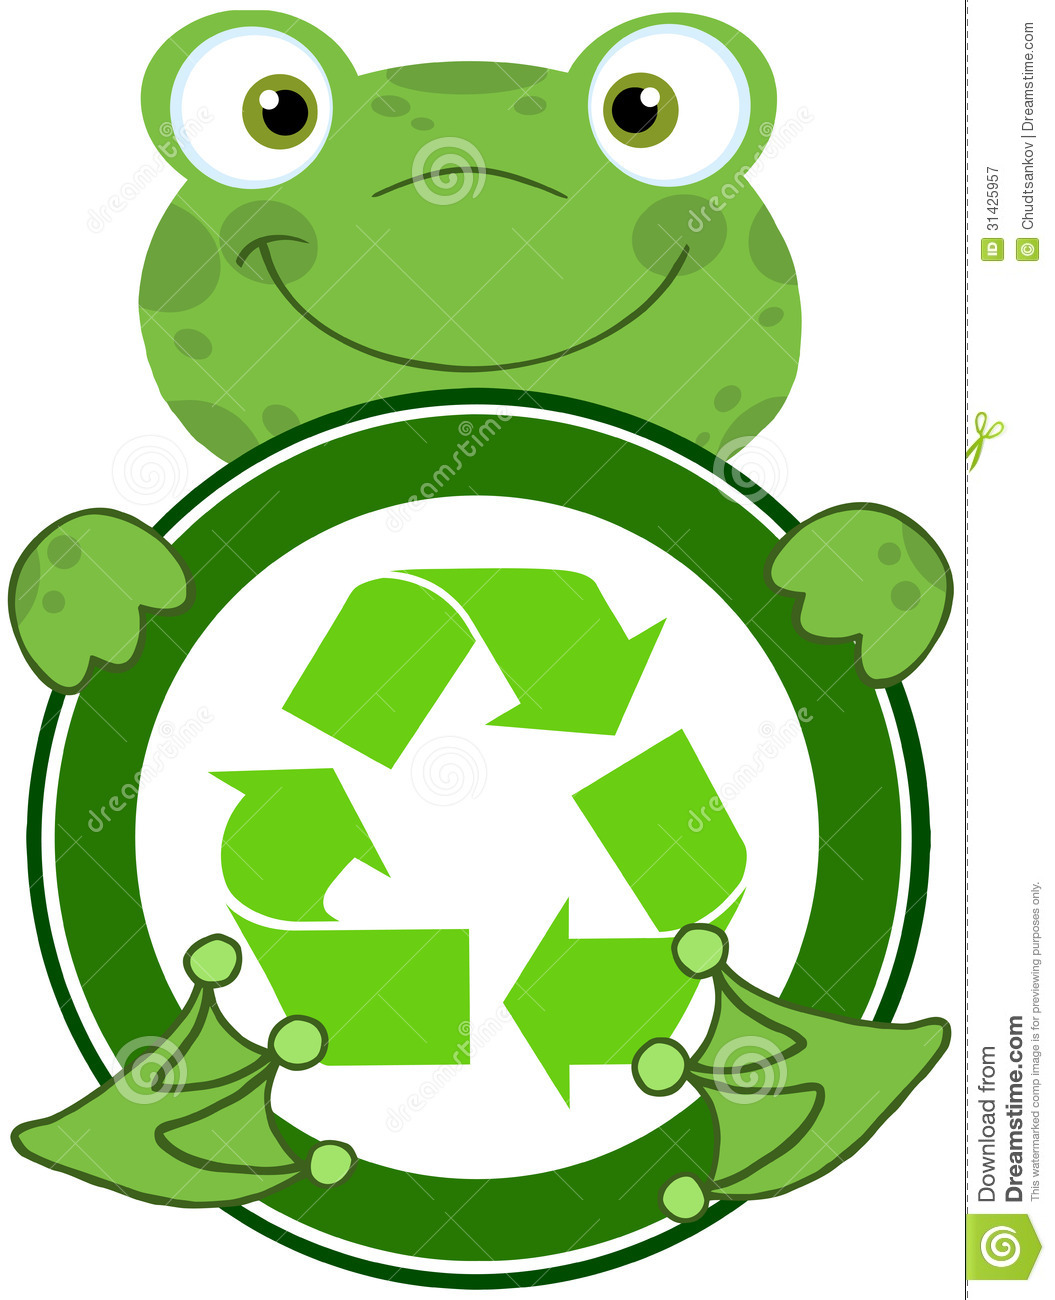 Cool Recycle Logo Recycle Symbol clipart